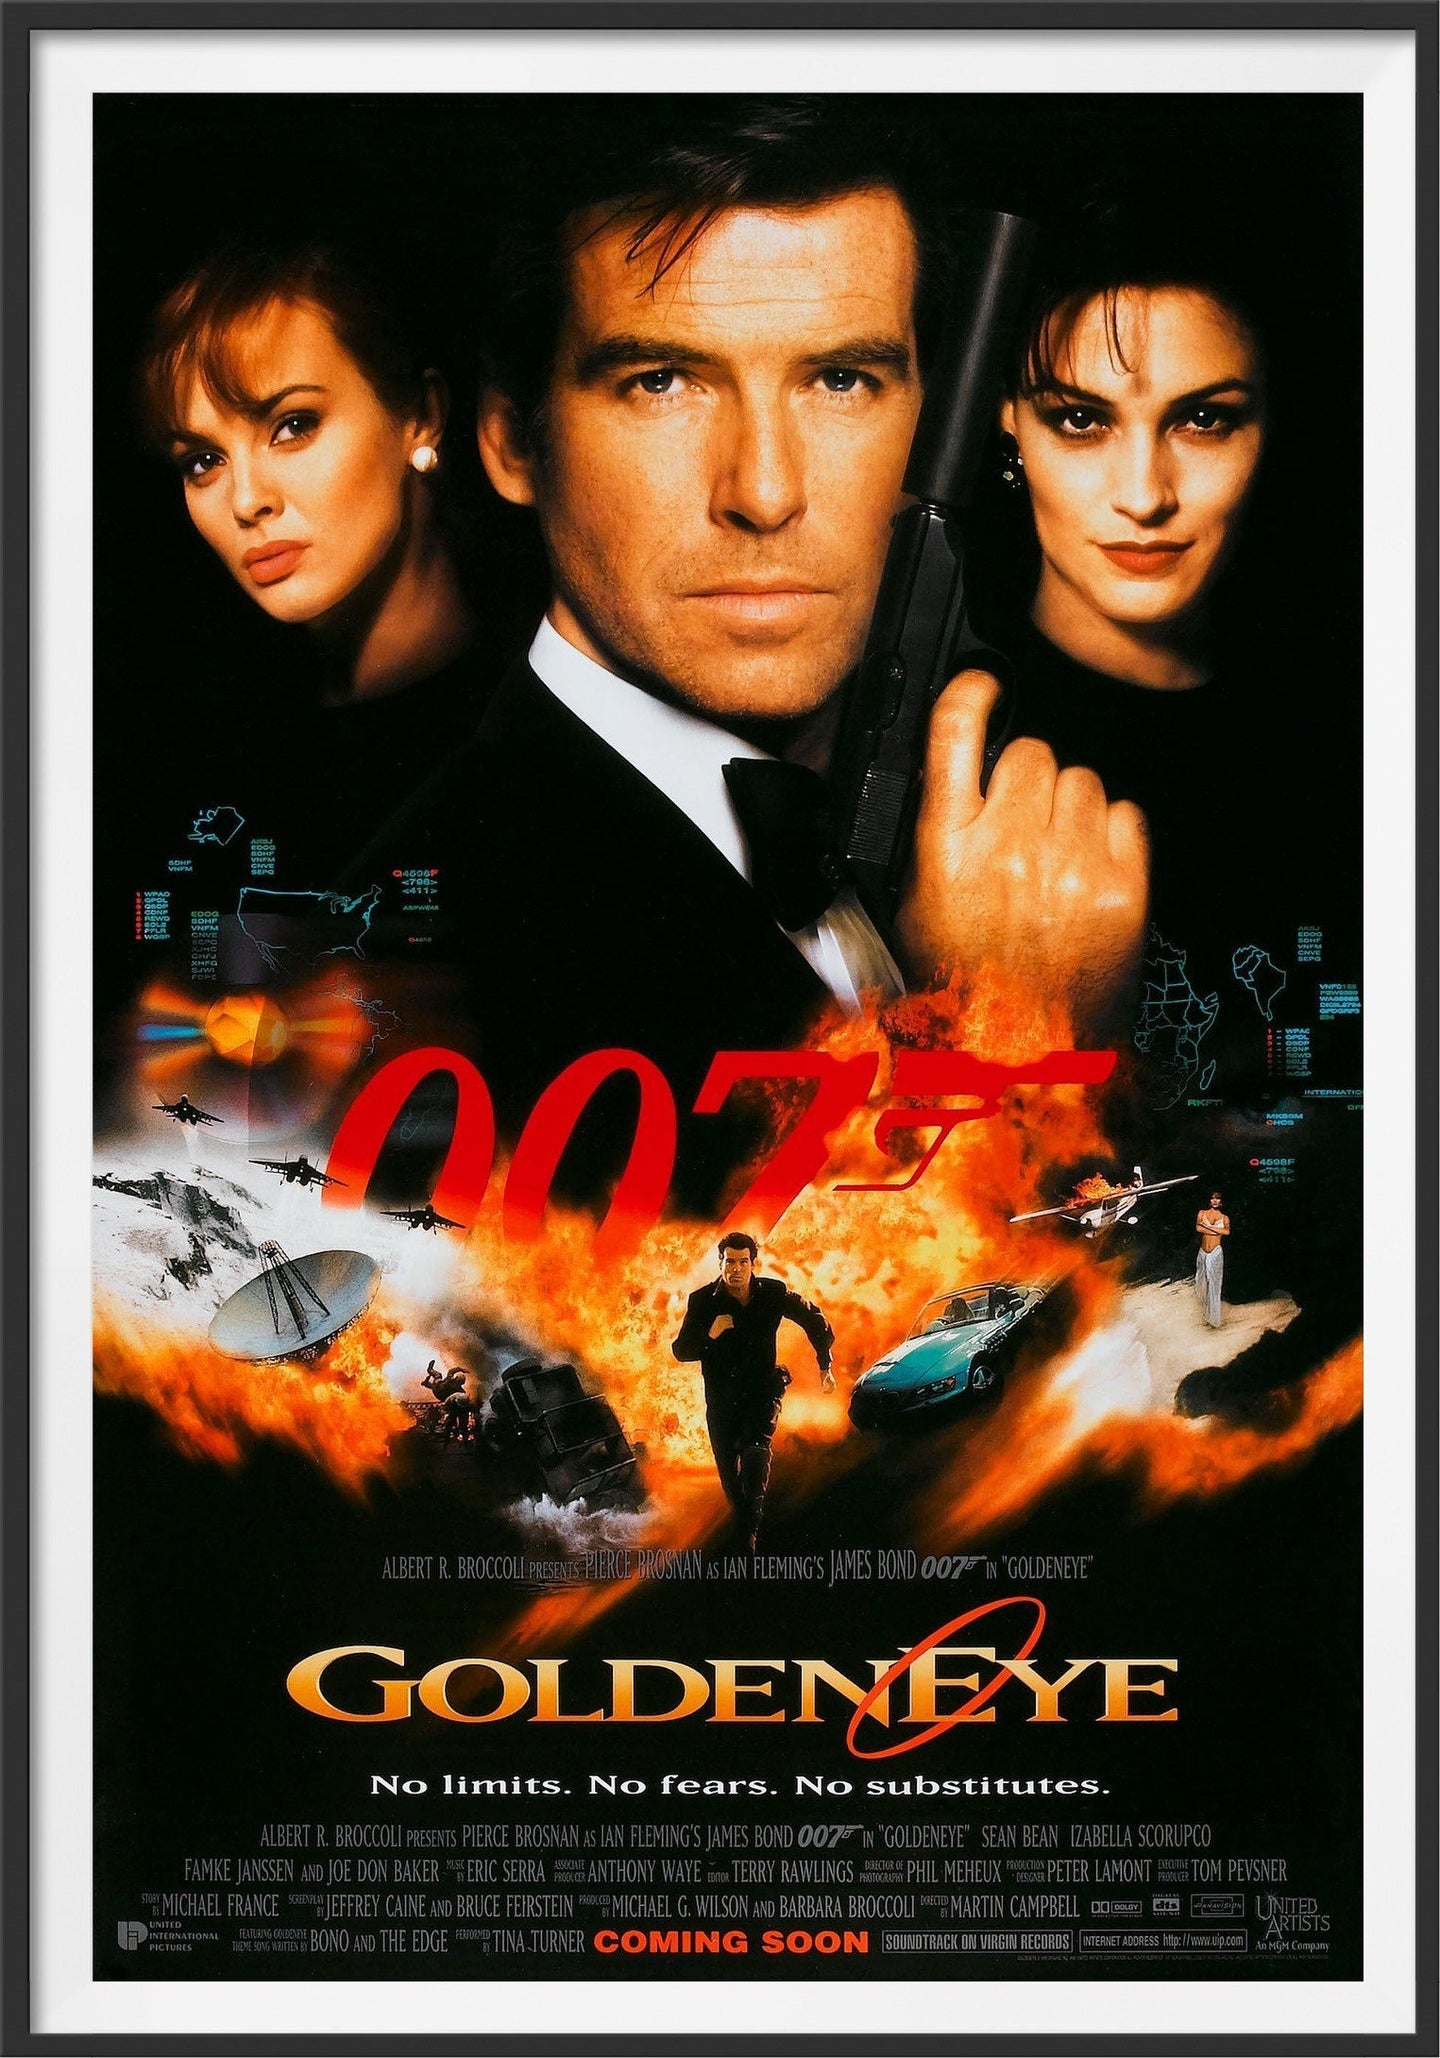 An original movie poster for the the James Bond film Goldeneye